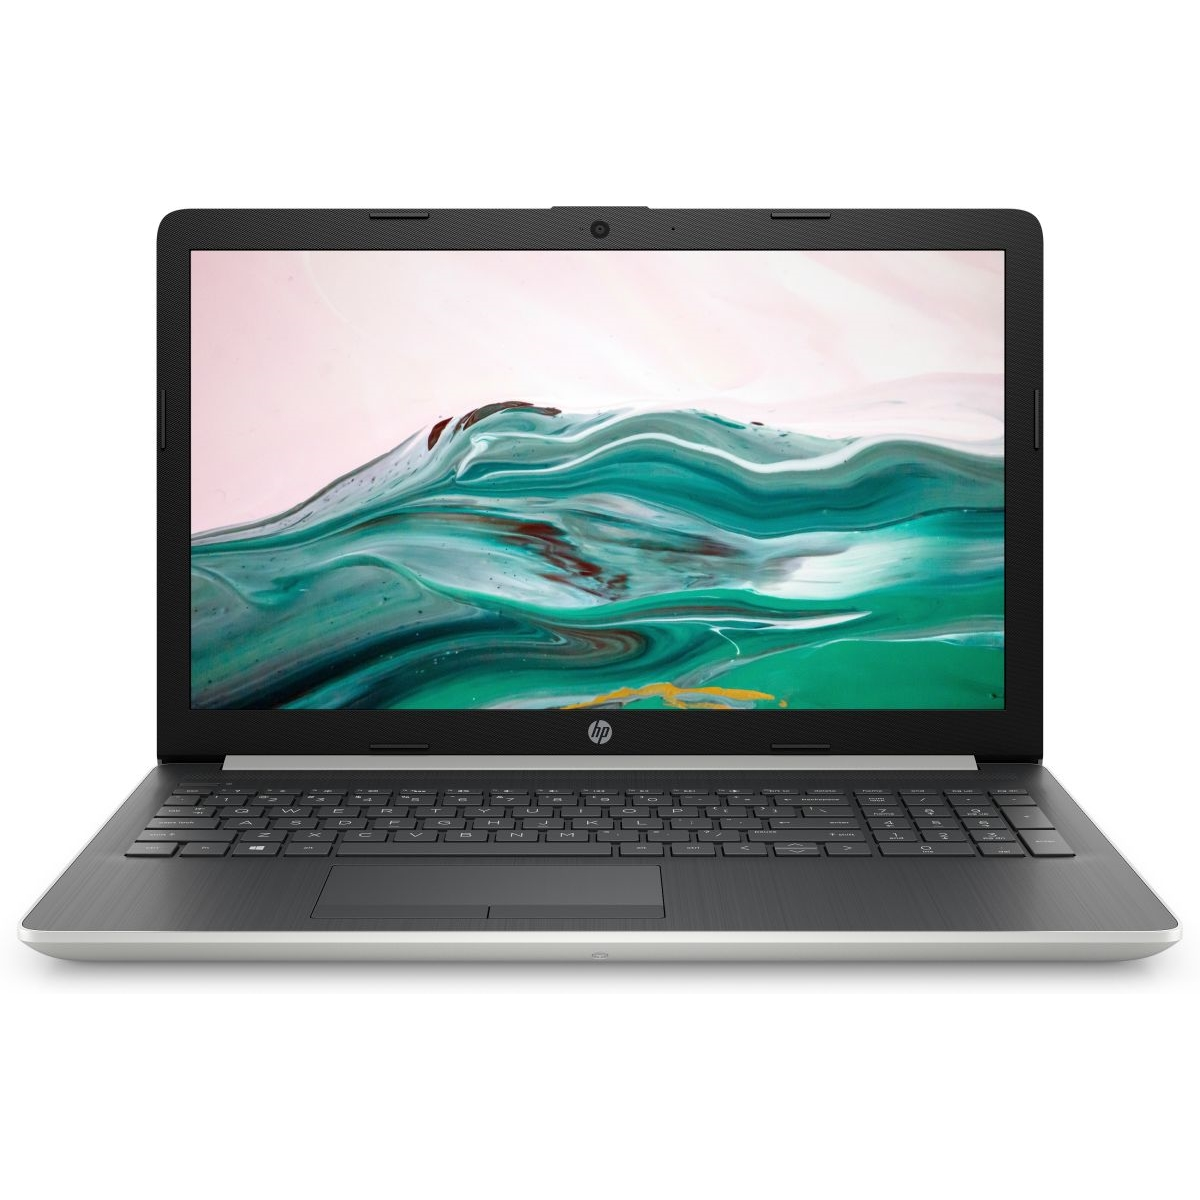 "HP 15-DA2022NT I5-10210U 8GB 256GB SSD 1TB 2GB GF MX110 15.6"" FHD FREEDOS SILVER NOTEBOOK"